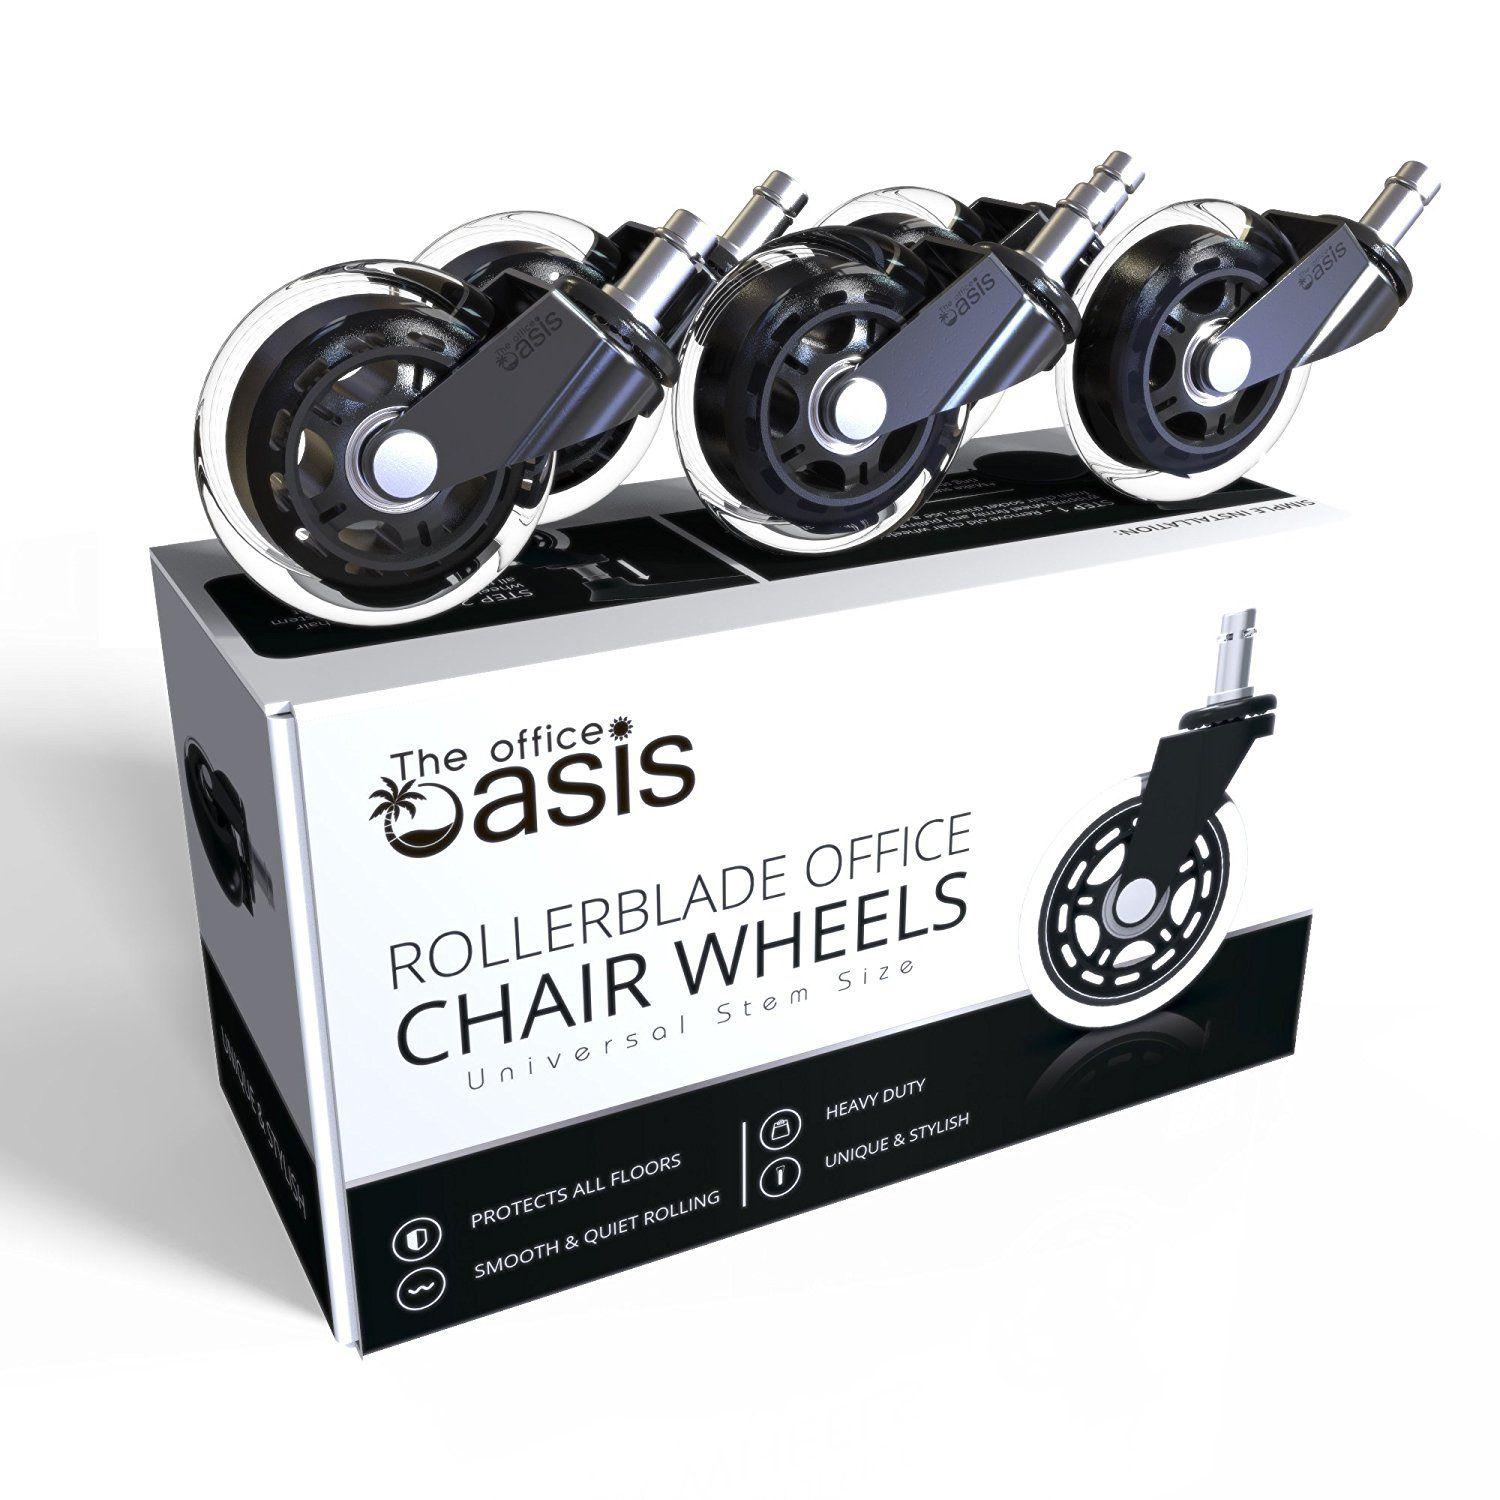 Gentil Heavy Duty Office Chair Casters   Modern Home Office Furniture Check More  At Http://www.drjamesghoodblog.com/heavy Duty Office Chair Casters/    Pinterest ...